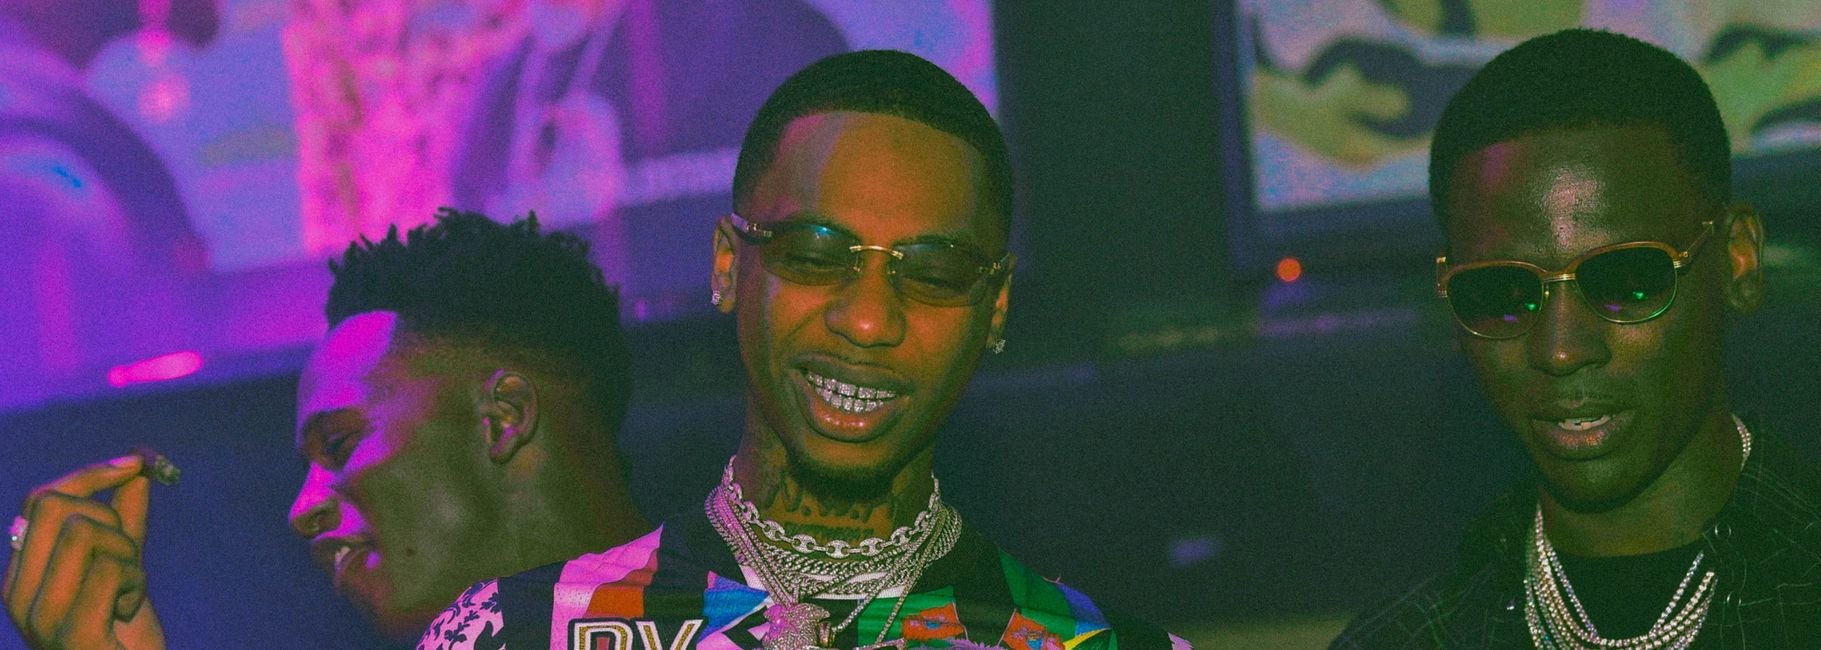 Key Glock Strapped Entertainment Media Music News